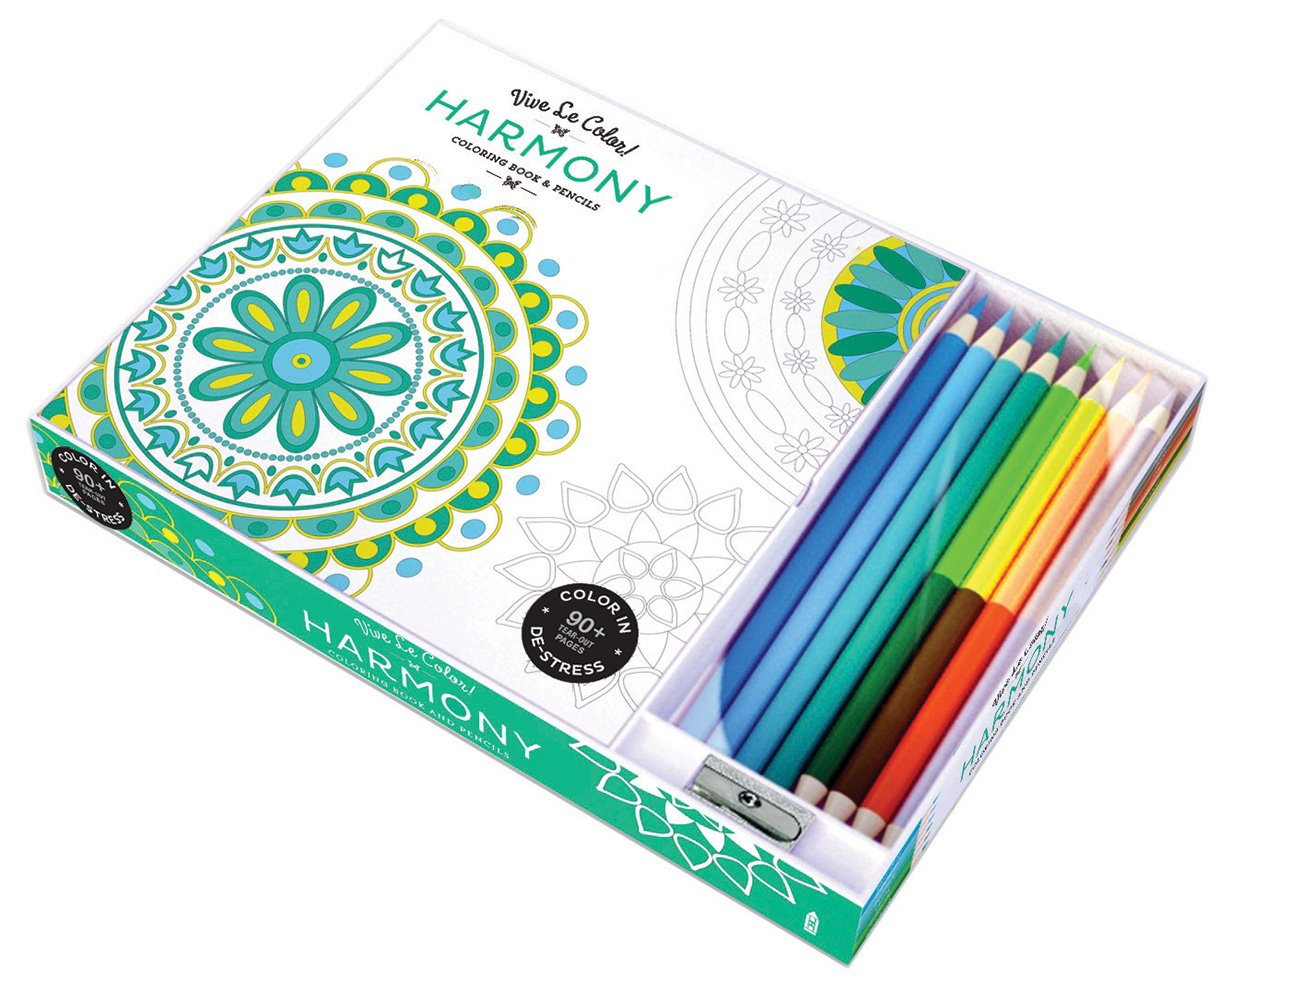 Vive Le Color Harmony Adult Coloring Book And Pencils Therapy Kit Abrams Noterie Original French Edition By Marabout 9781419720536 Books